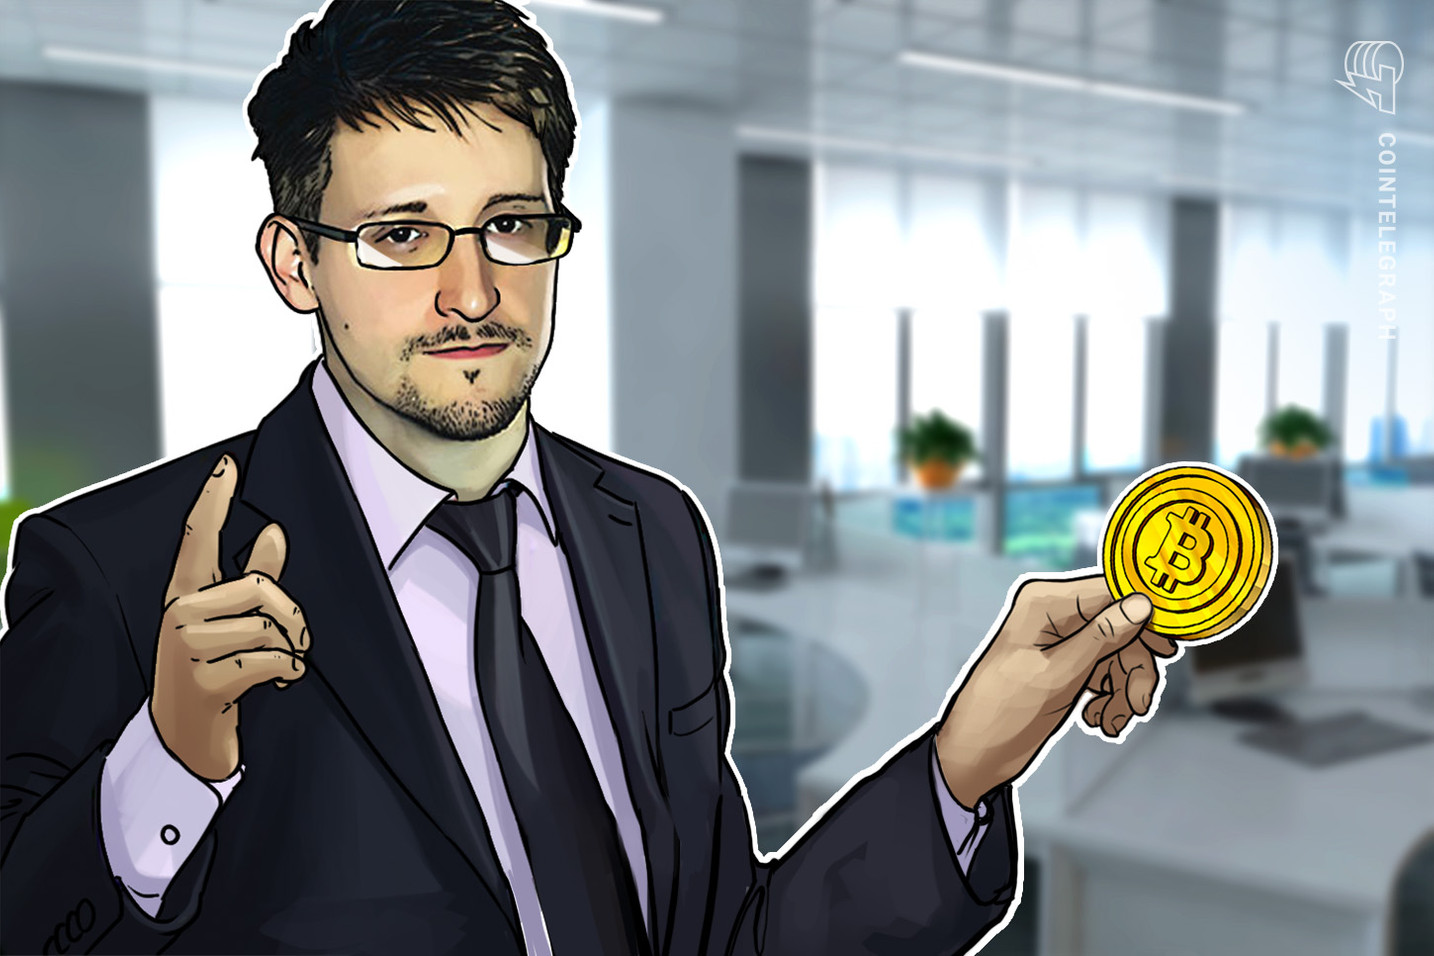 Edward Snowden 'Feels Like Buying Bitcoin' Amid Price Crash